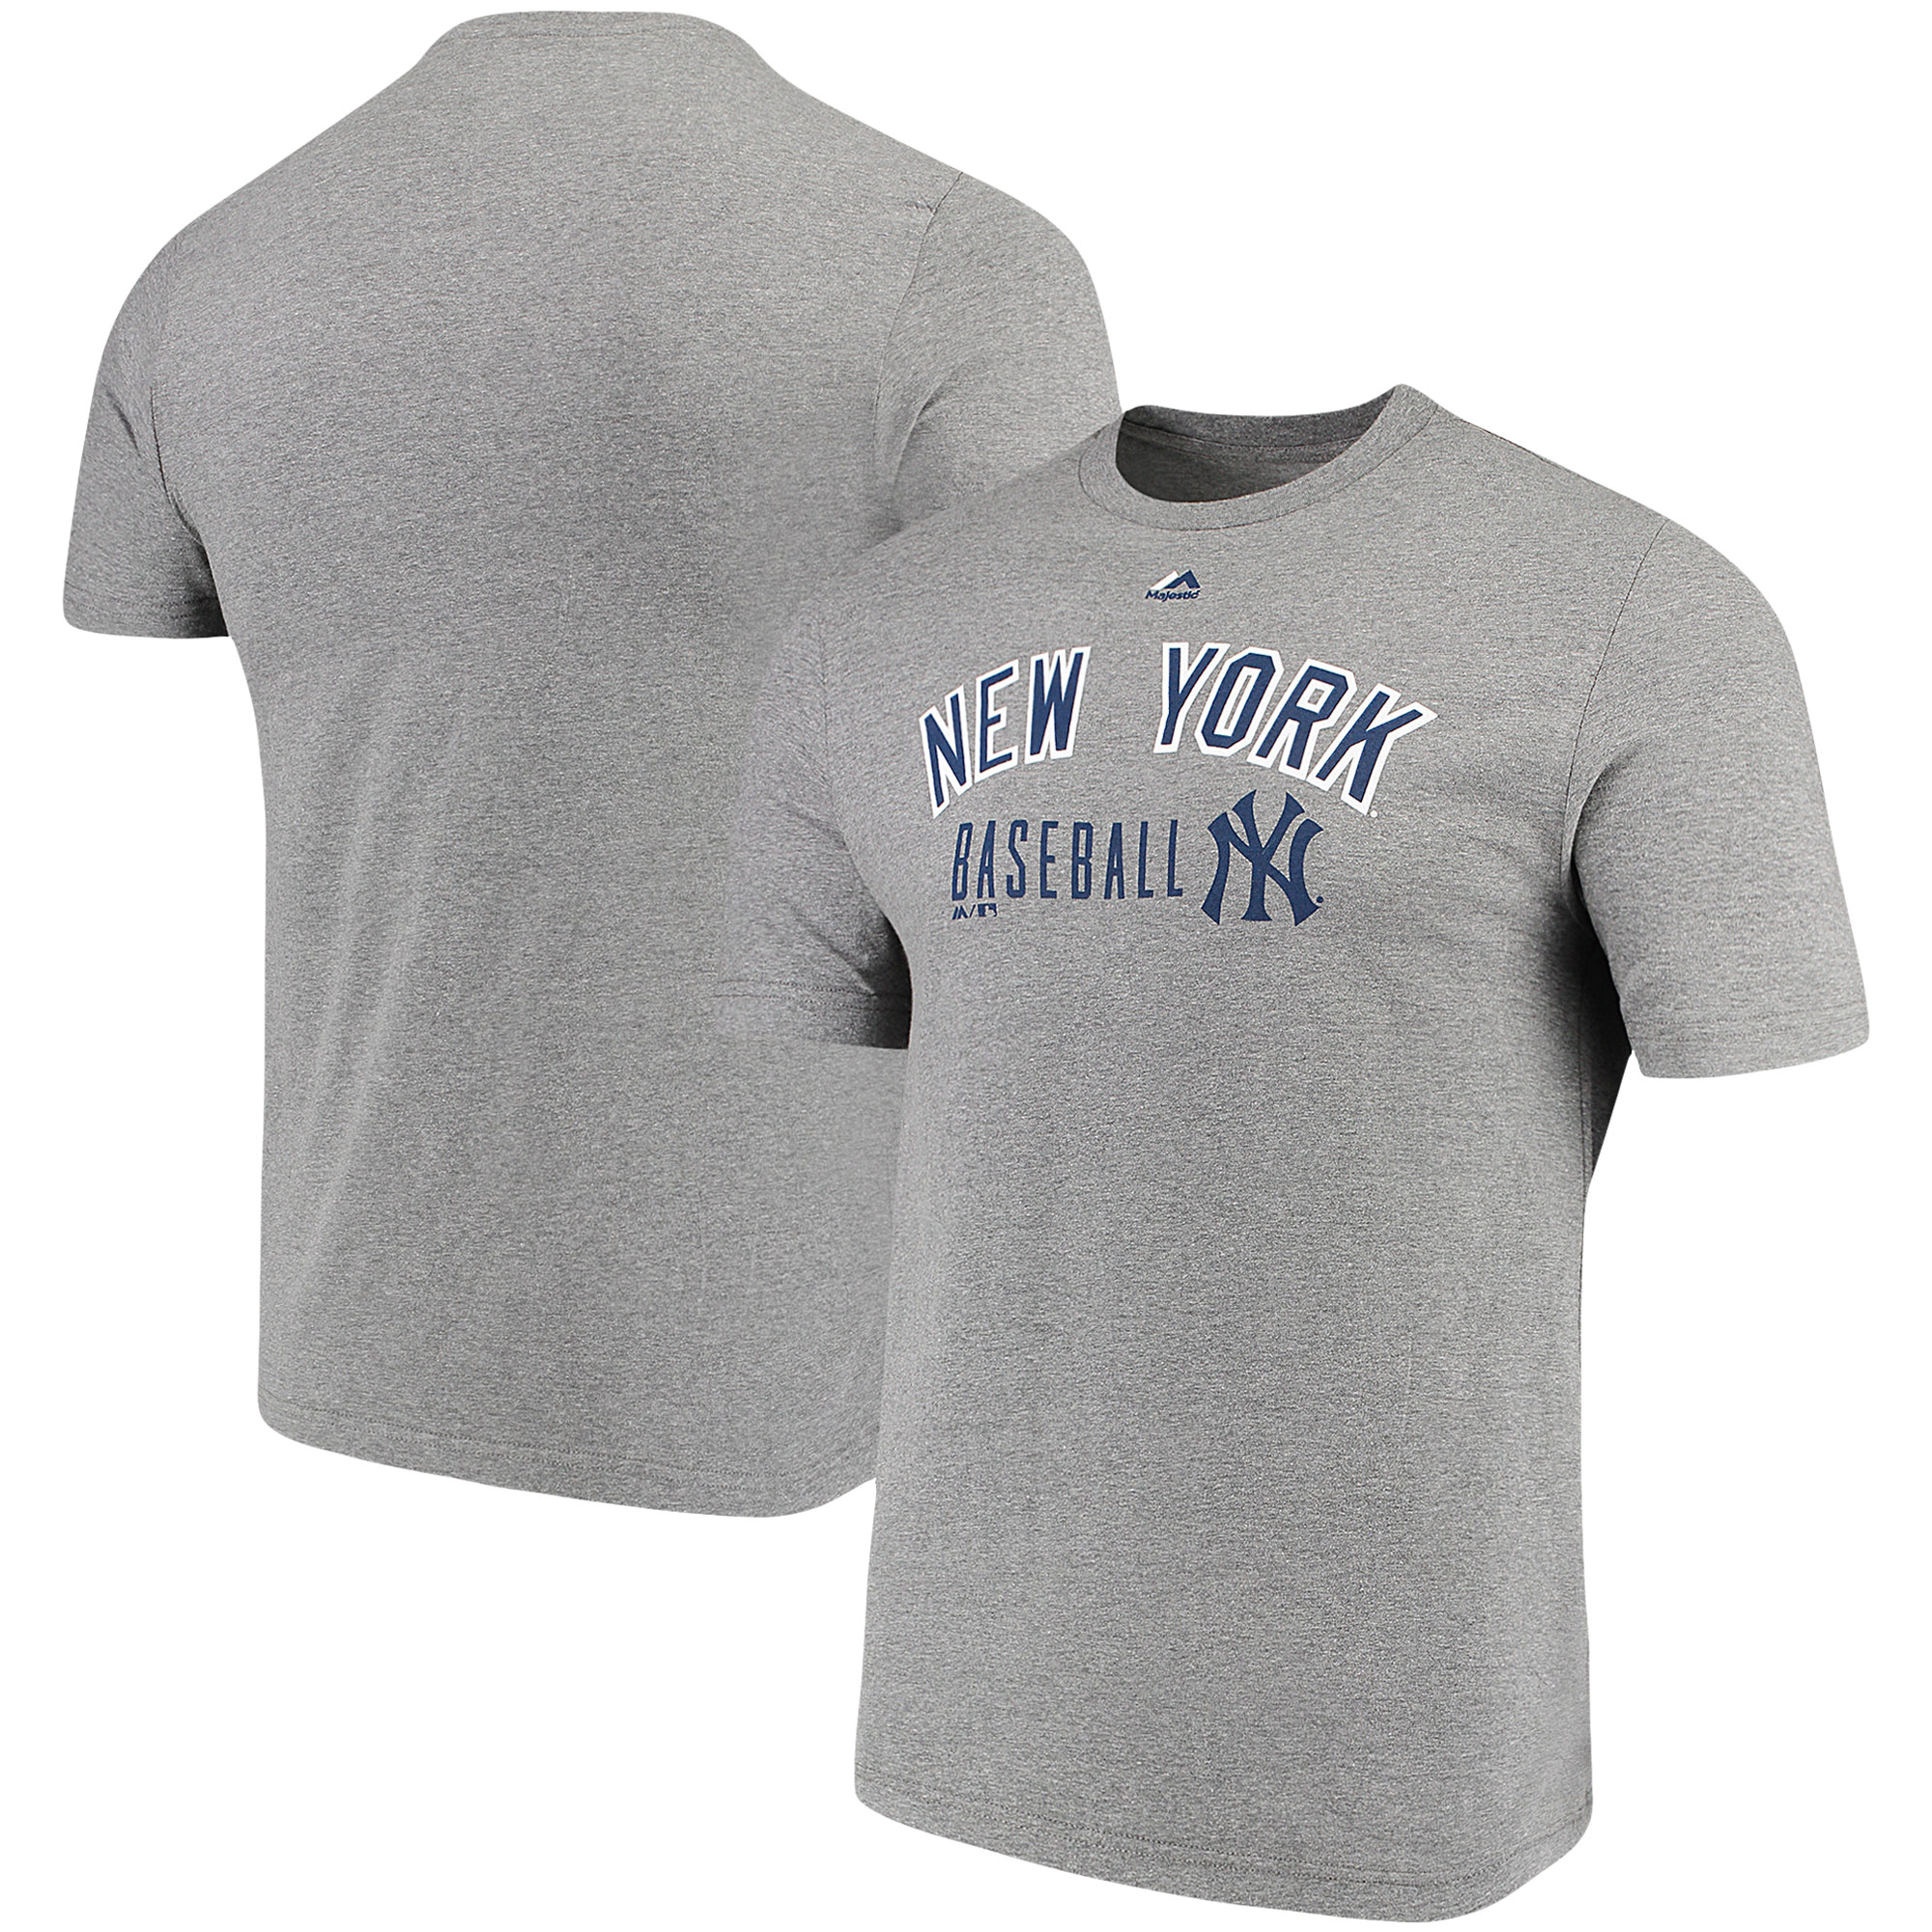 New York Yankees Majestic Open Opportunity Domestic T-Shirt - Heathered Gray